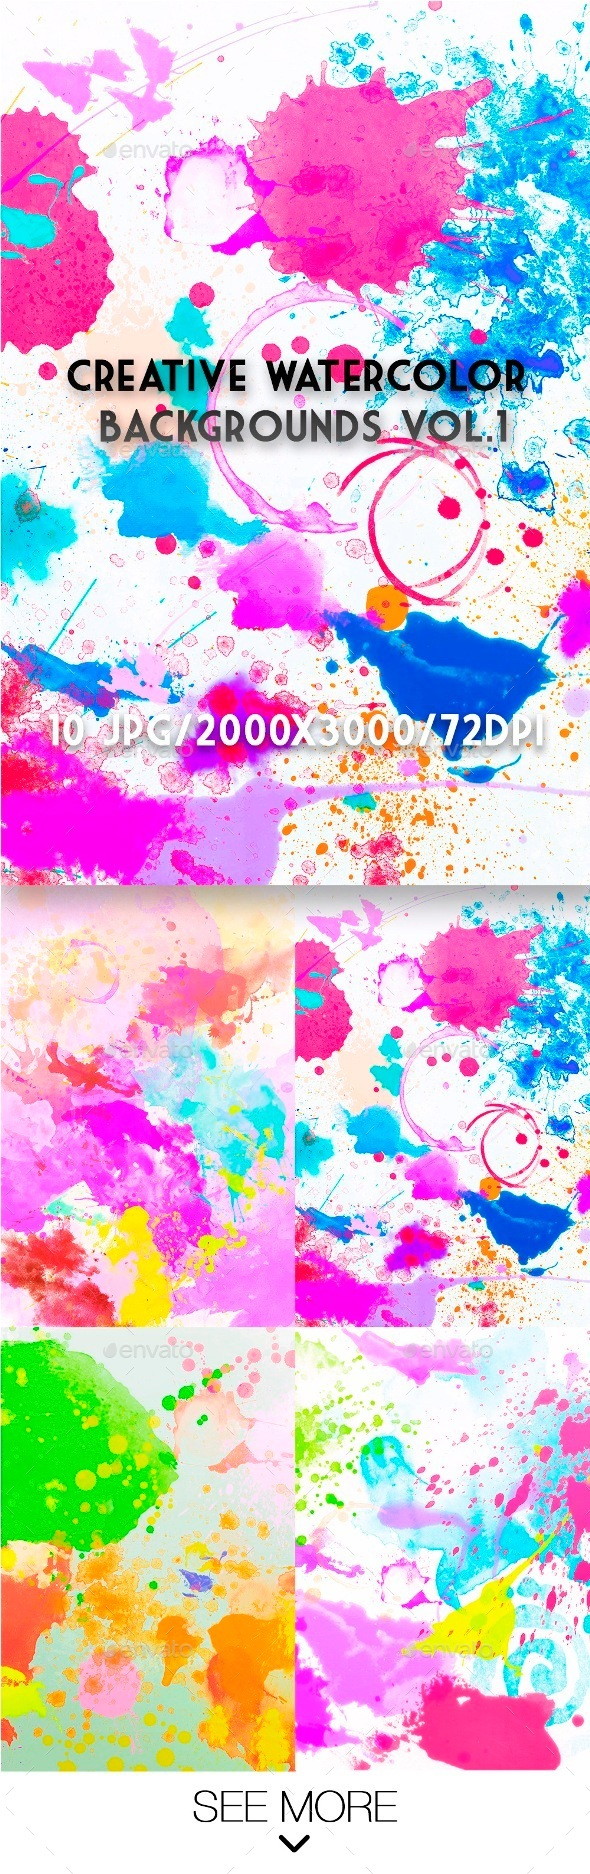 Creative Watercolor Backgrounds Vol.1 - Abstract Backgrounds